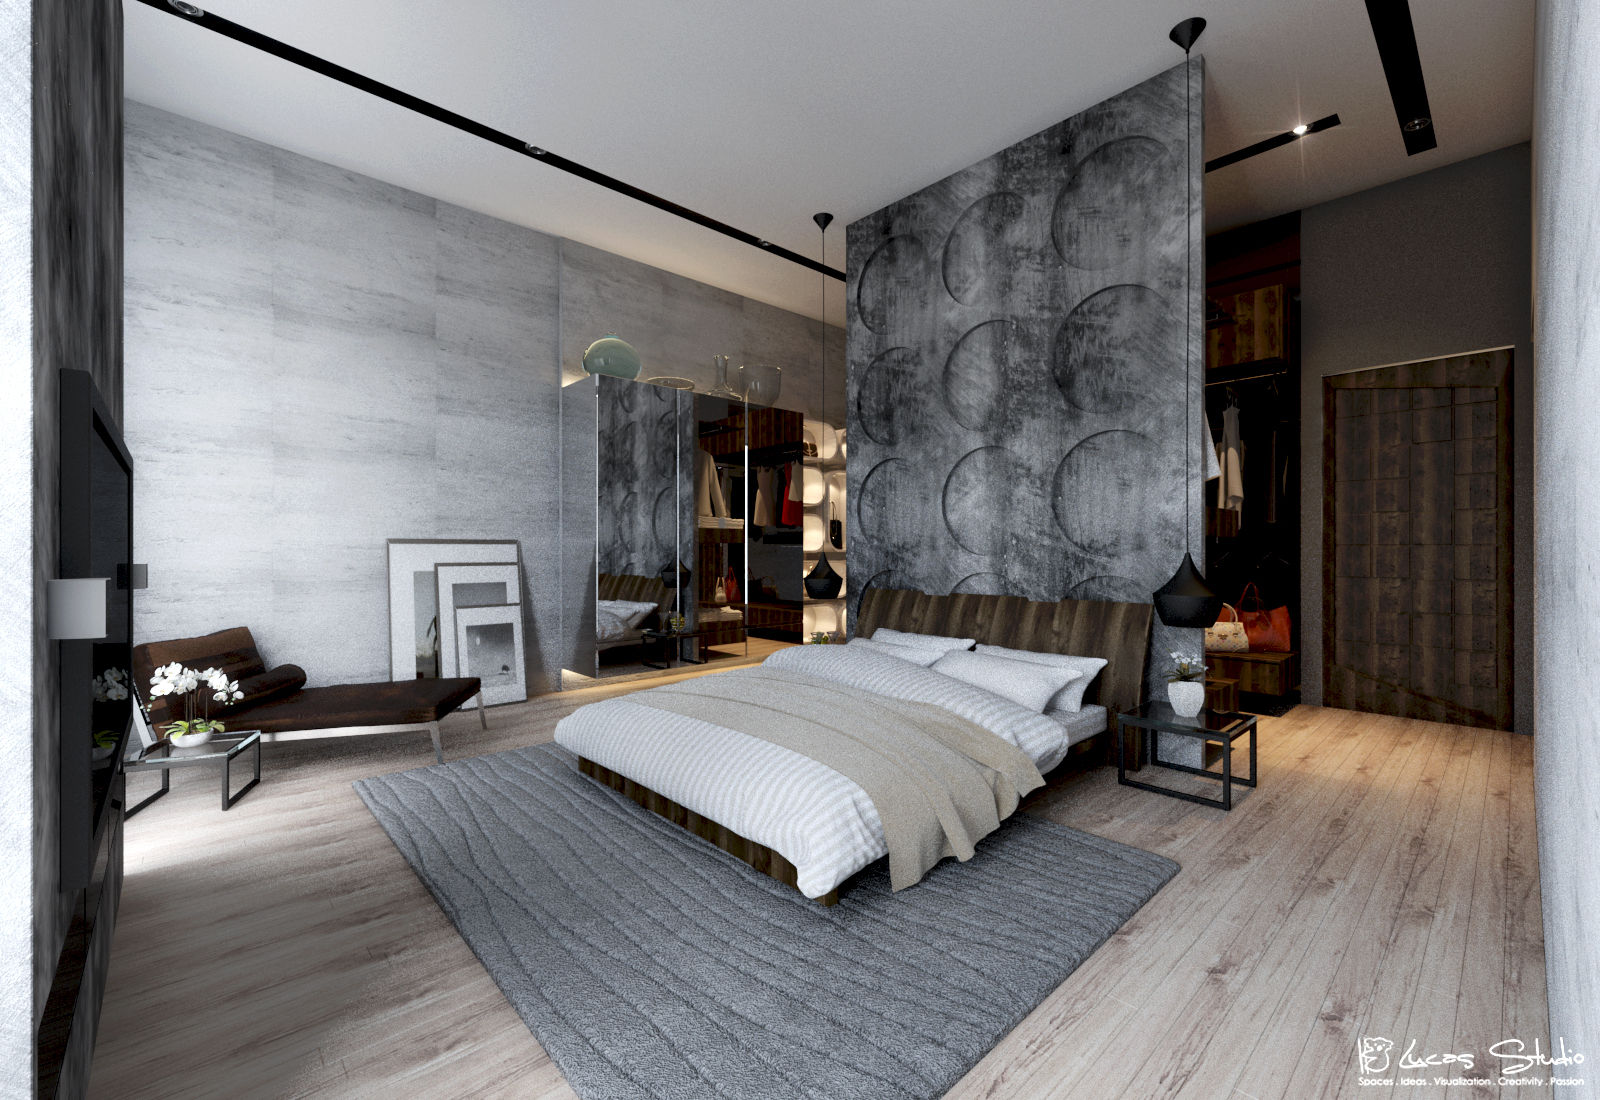 10 Beautiful Examples Of Bedroom Accent Walls - D.Signers on Teenage:rfnoincytf8= Room Designs  id=24614